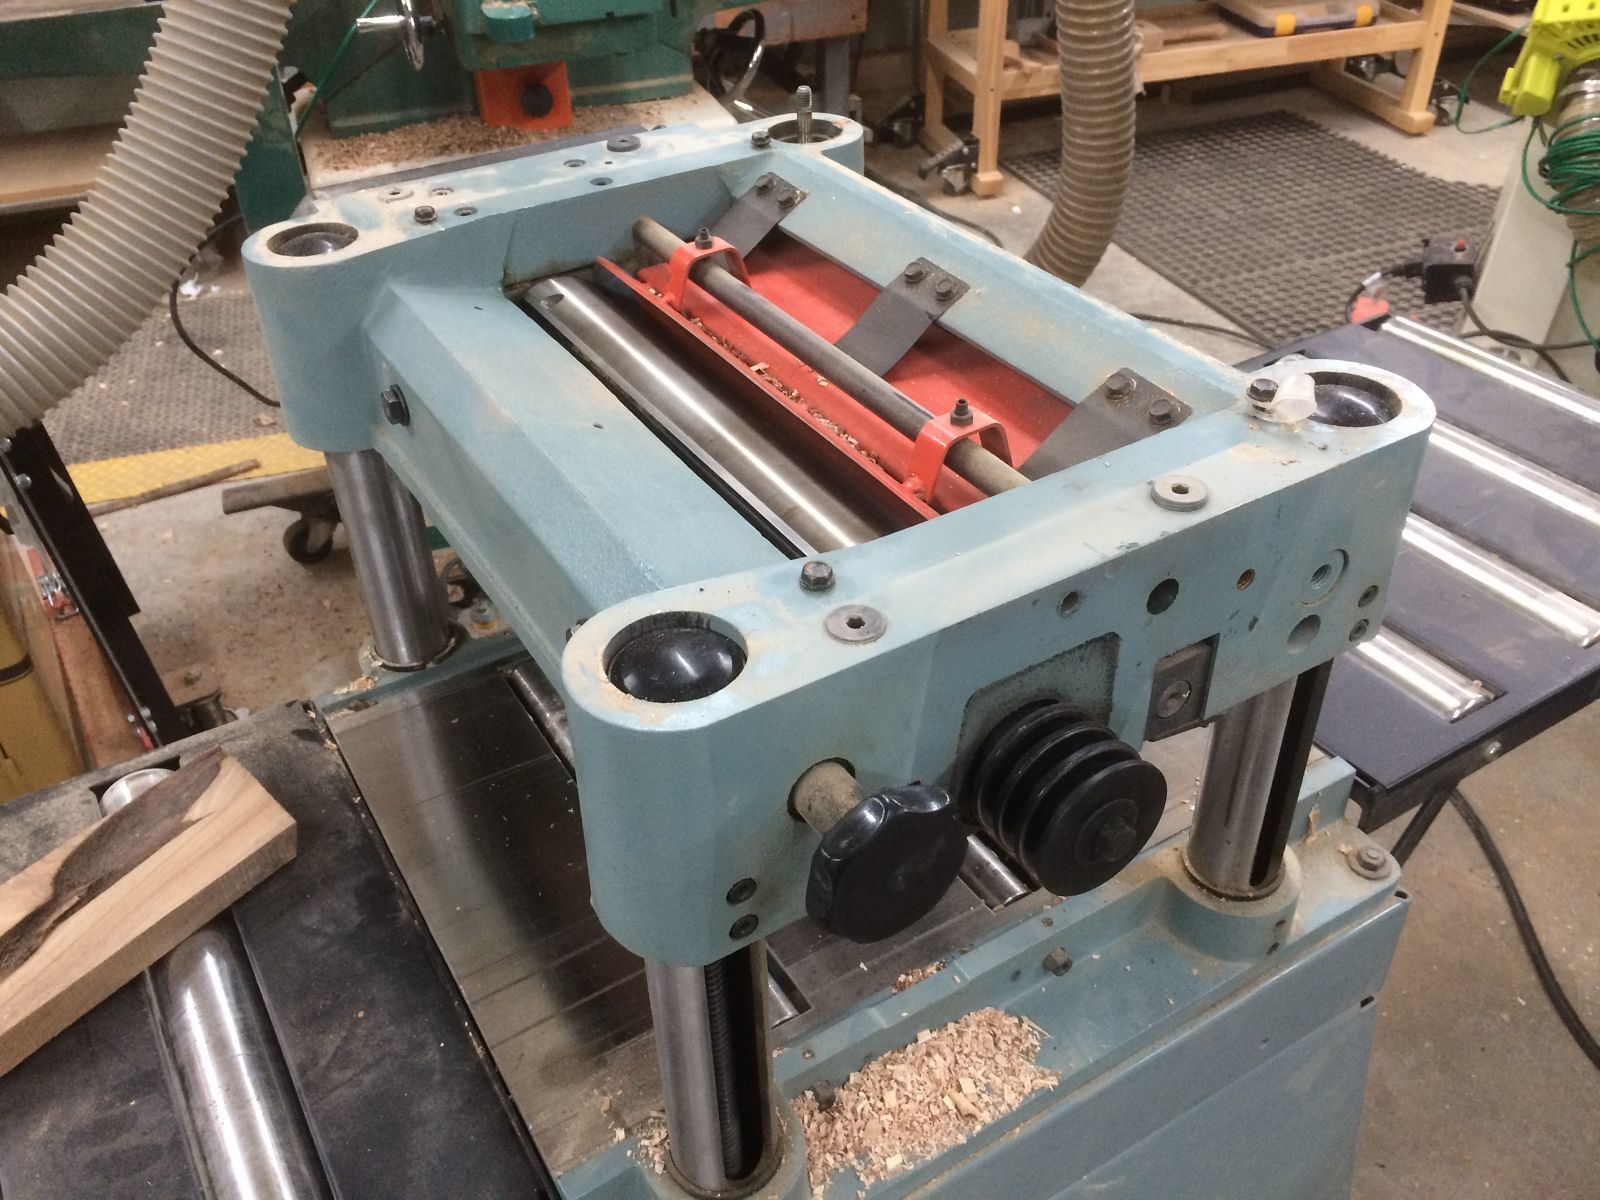 Upgrading a planer to a segmented cutterhead - part 1 - FineWoodworking